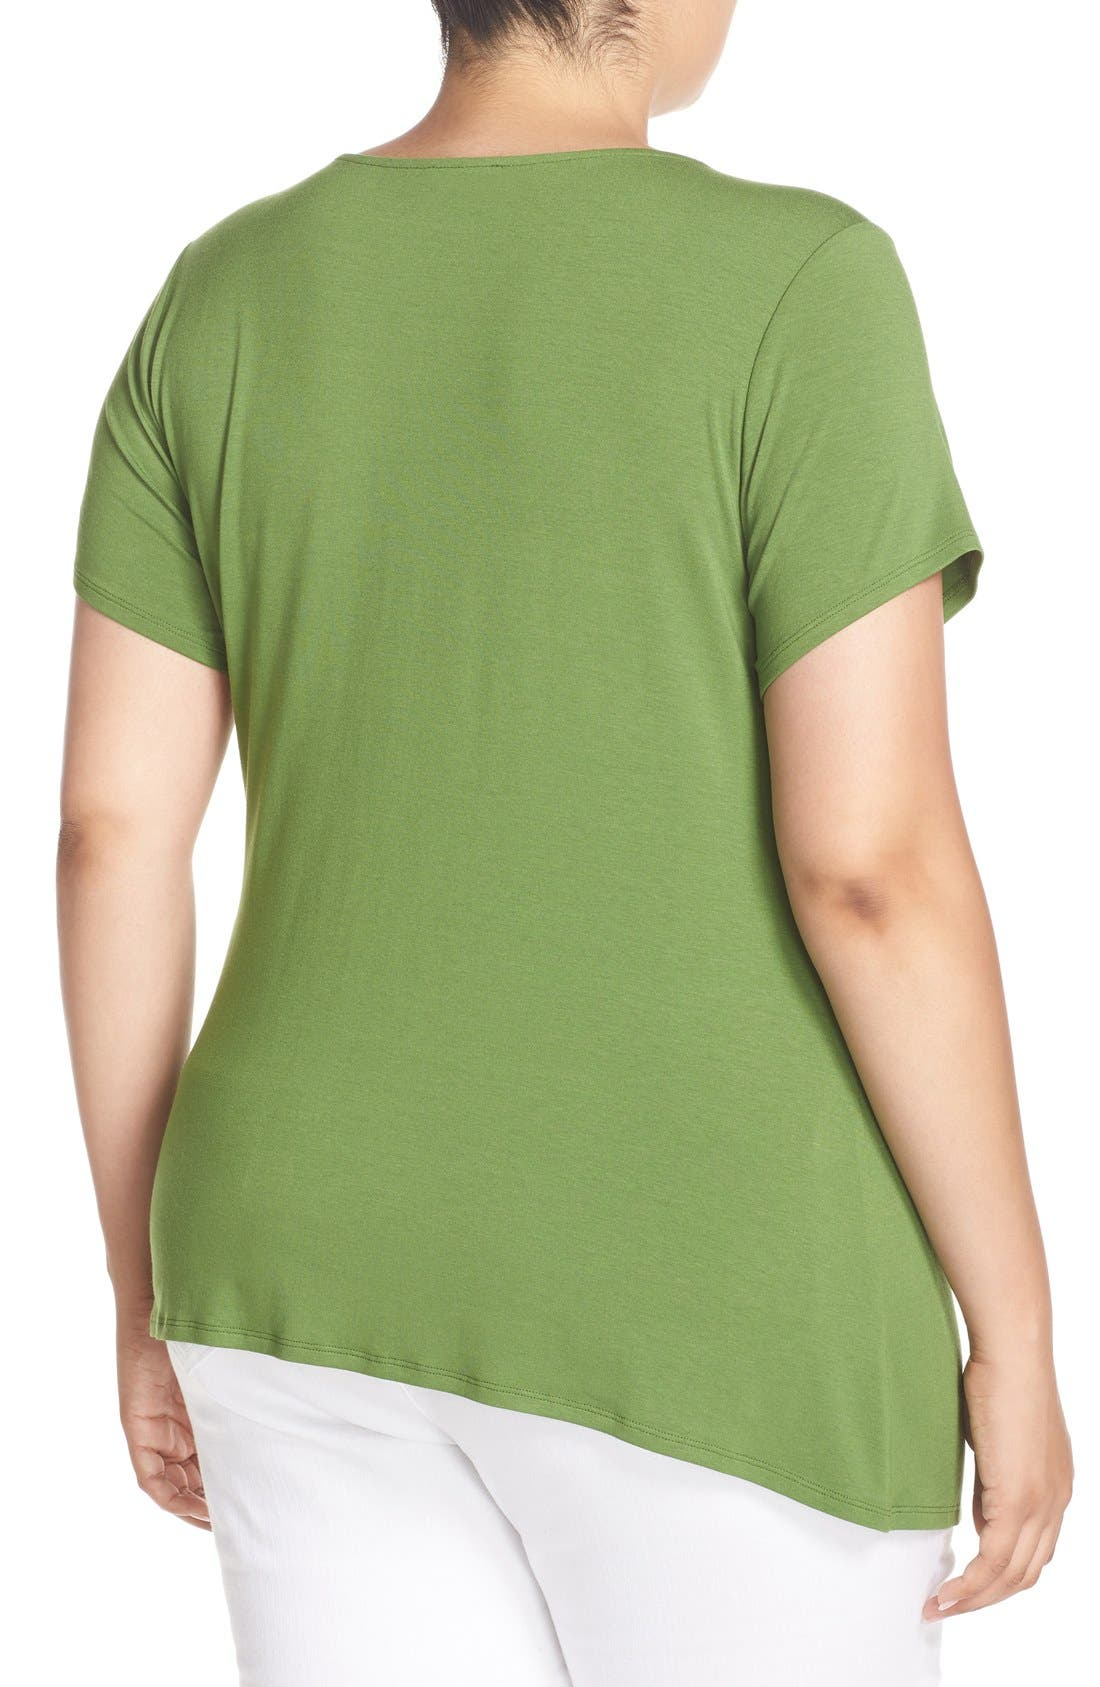 Alternate Image 2  - Vince Camuto Short Sleeve Side Pleat Asymmetrical Top (Plus Size)